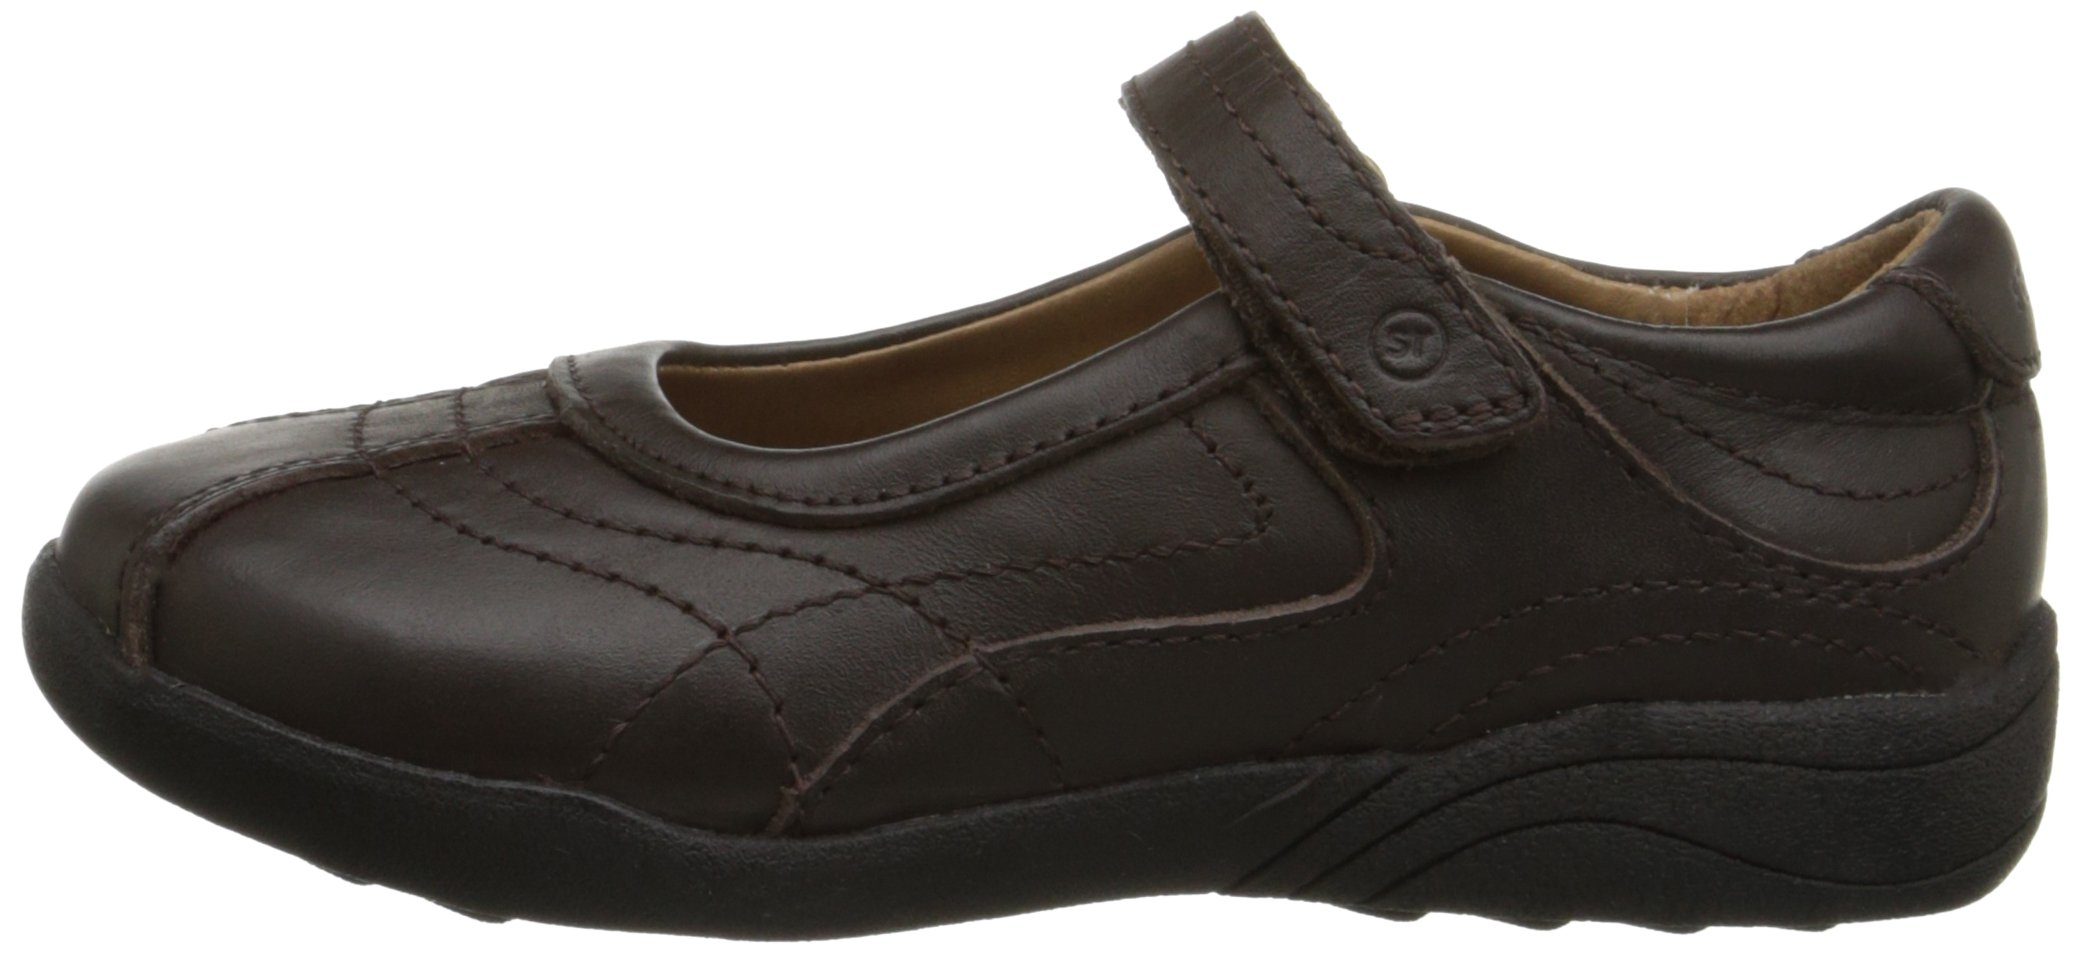 Stride Rite Claire Mary Jane (Toddler/Little Kid/Big Kid),Brown,13 M US Little Kid by Stride Rite (Image #4)